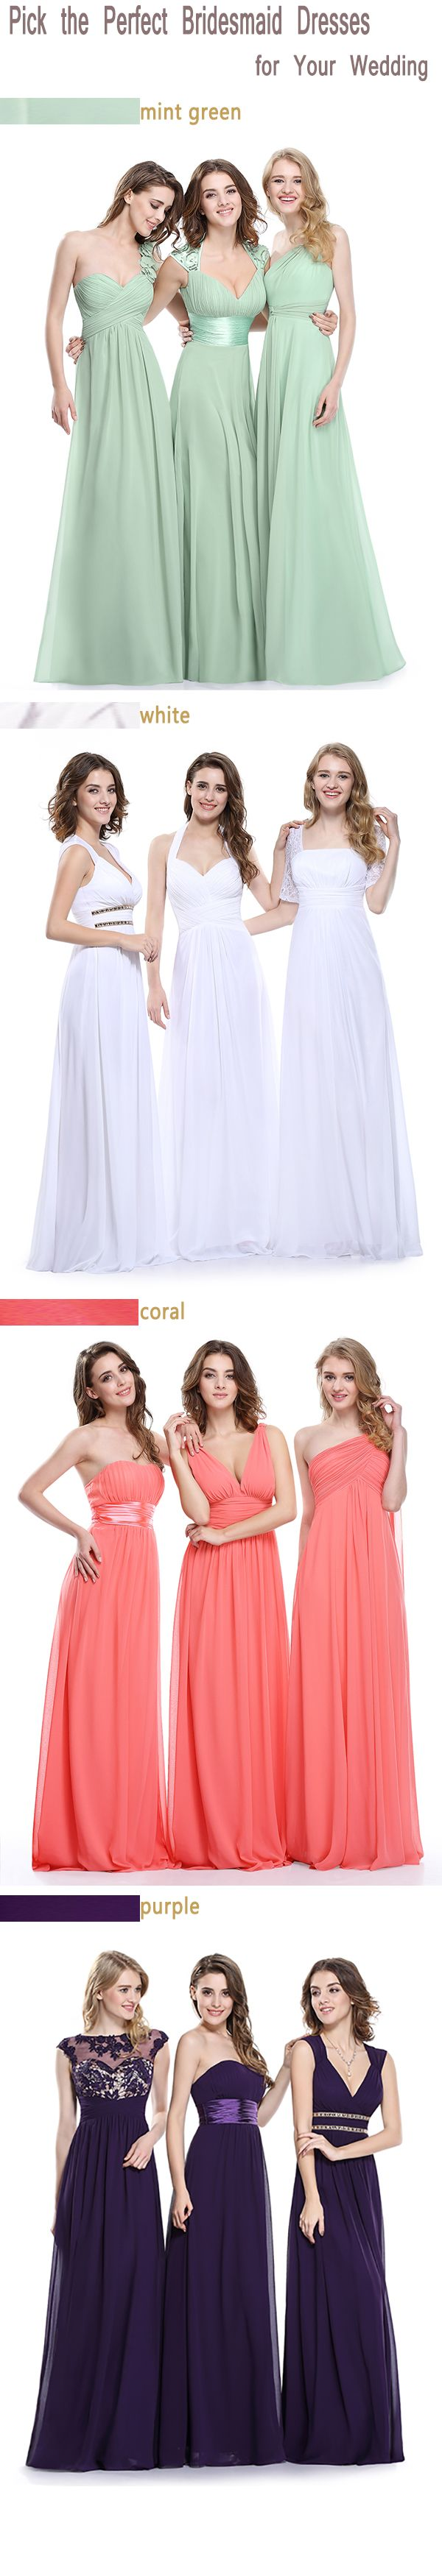 Pick the perfect bridesmaid dresses for your wedding 2016 for Mint color wedding dress